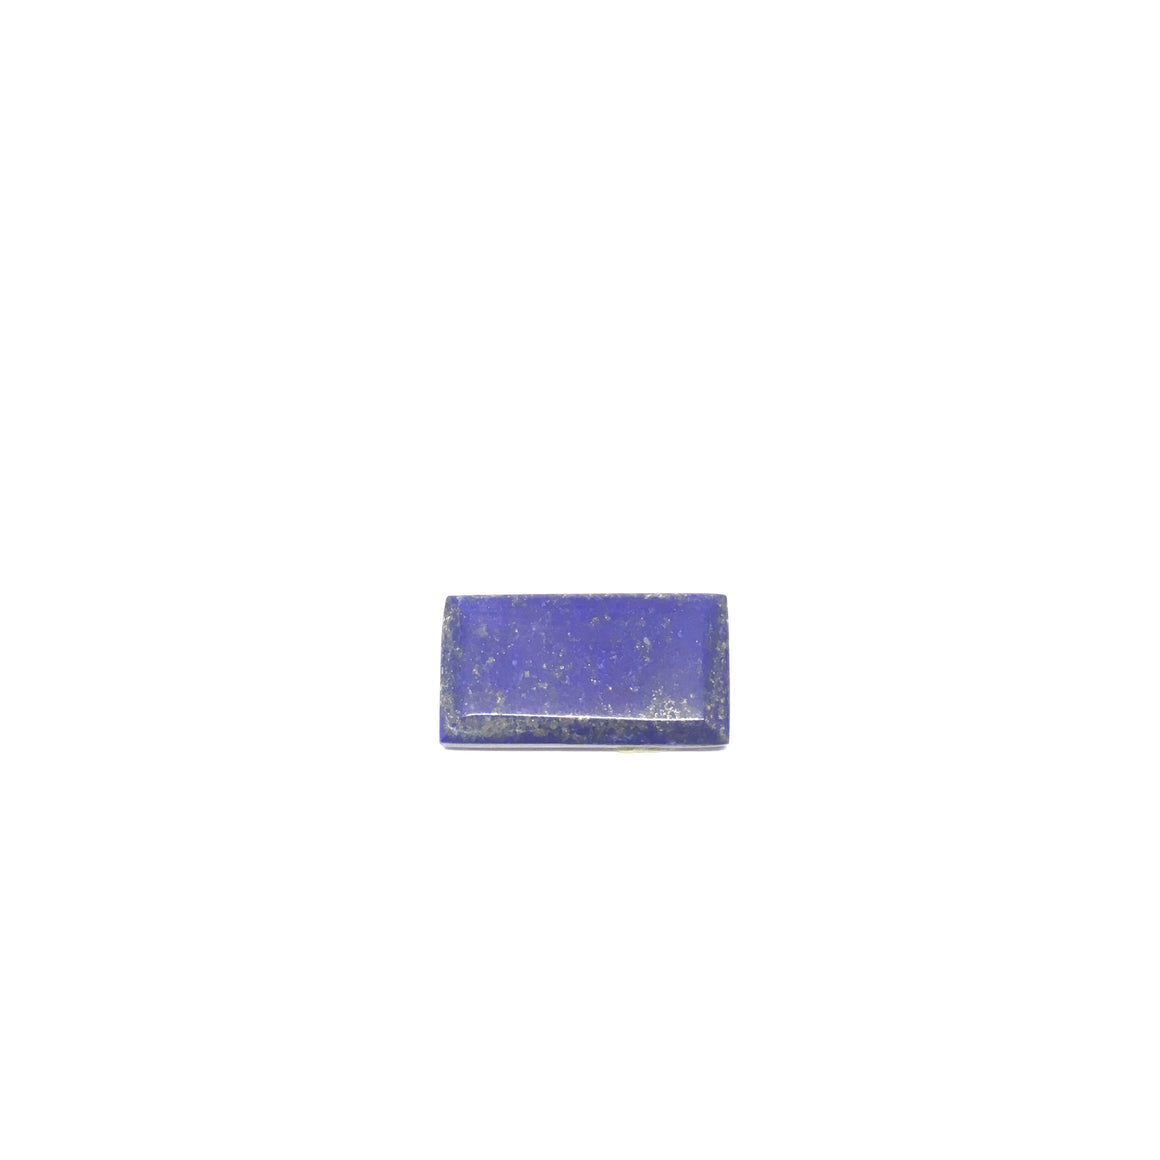 Lapis Lazuli Cabochon - Lapis Cabochon For Ring Baguette Cut - 23.50 ct